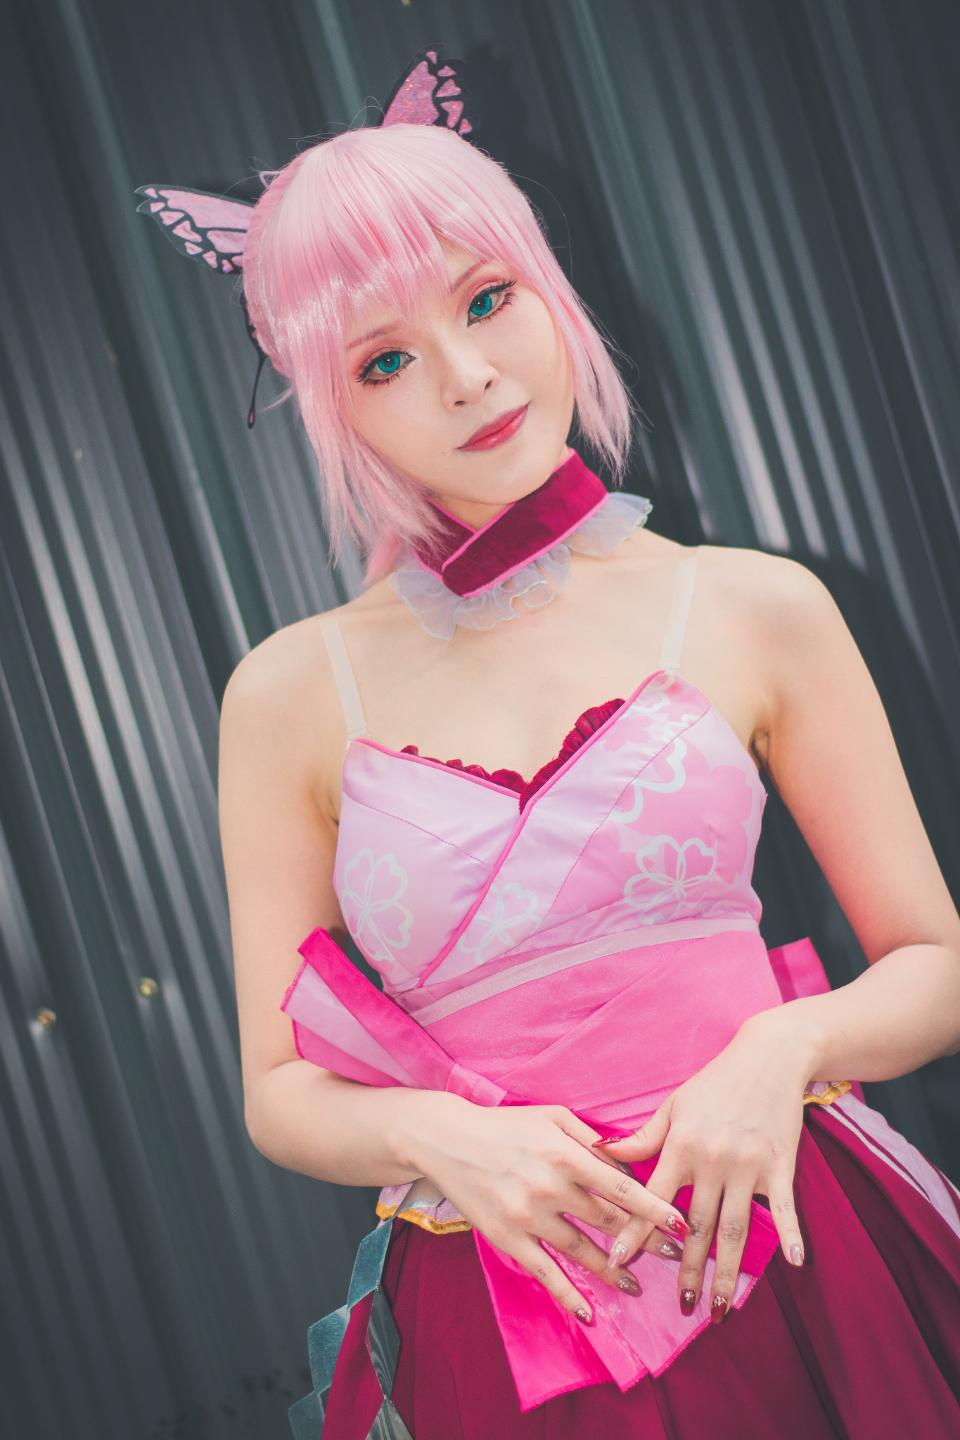 Cute Asian cosplayers dress up as Japanese Manga characters